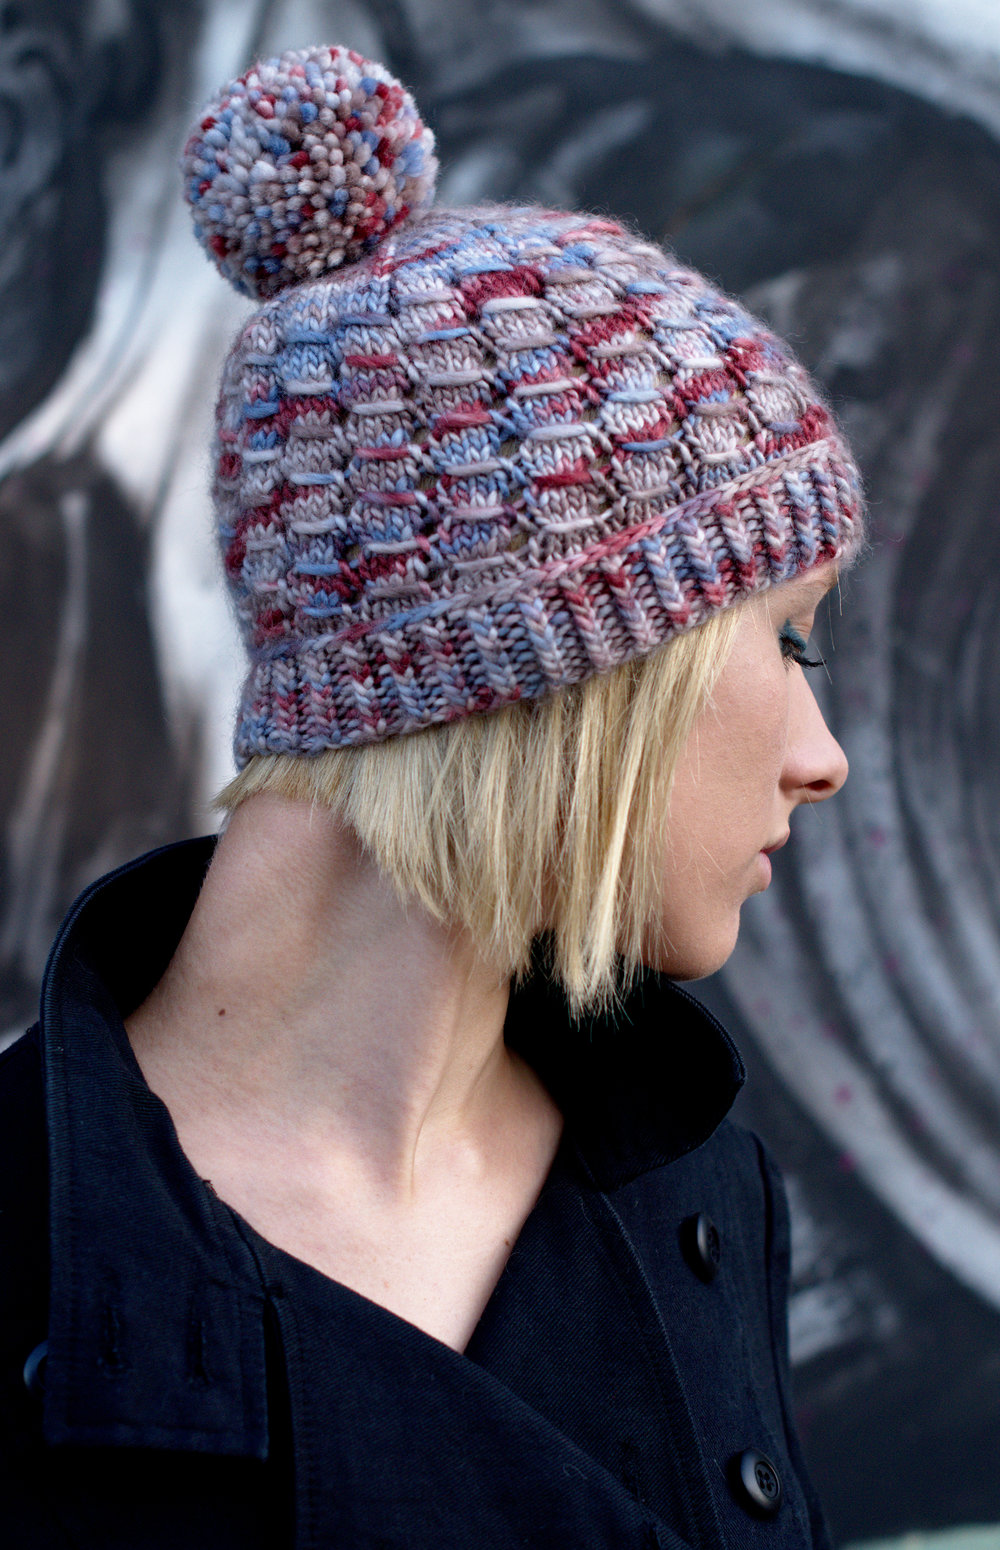 Laccio hand knit beanie hat pattern for aran weight yarn